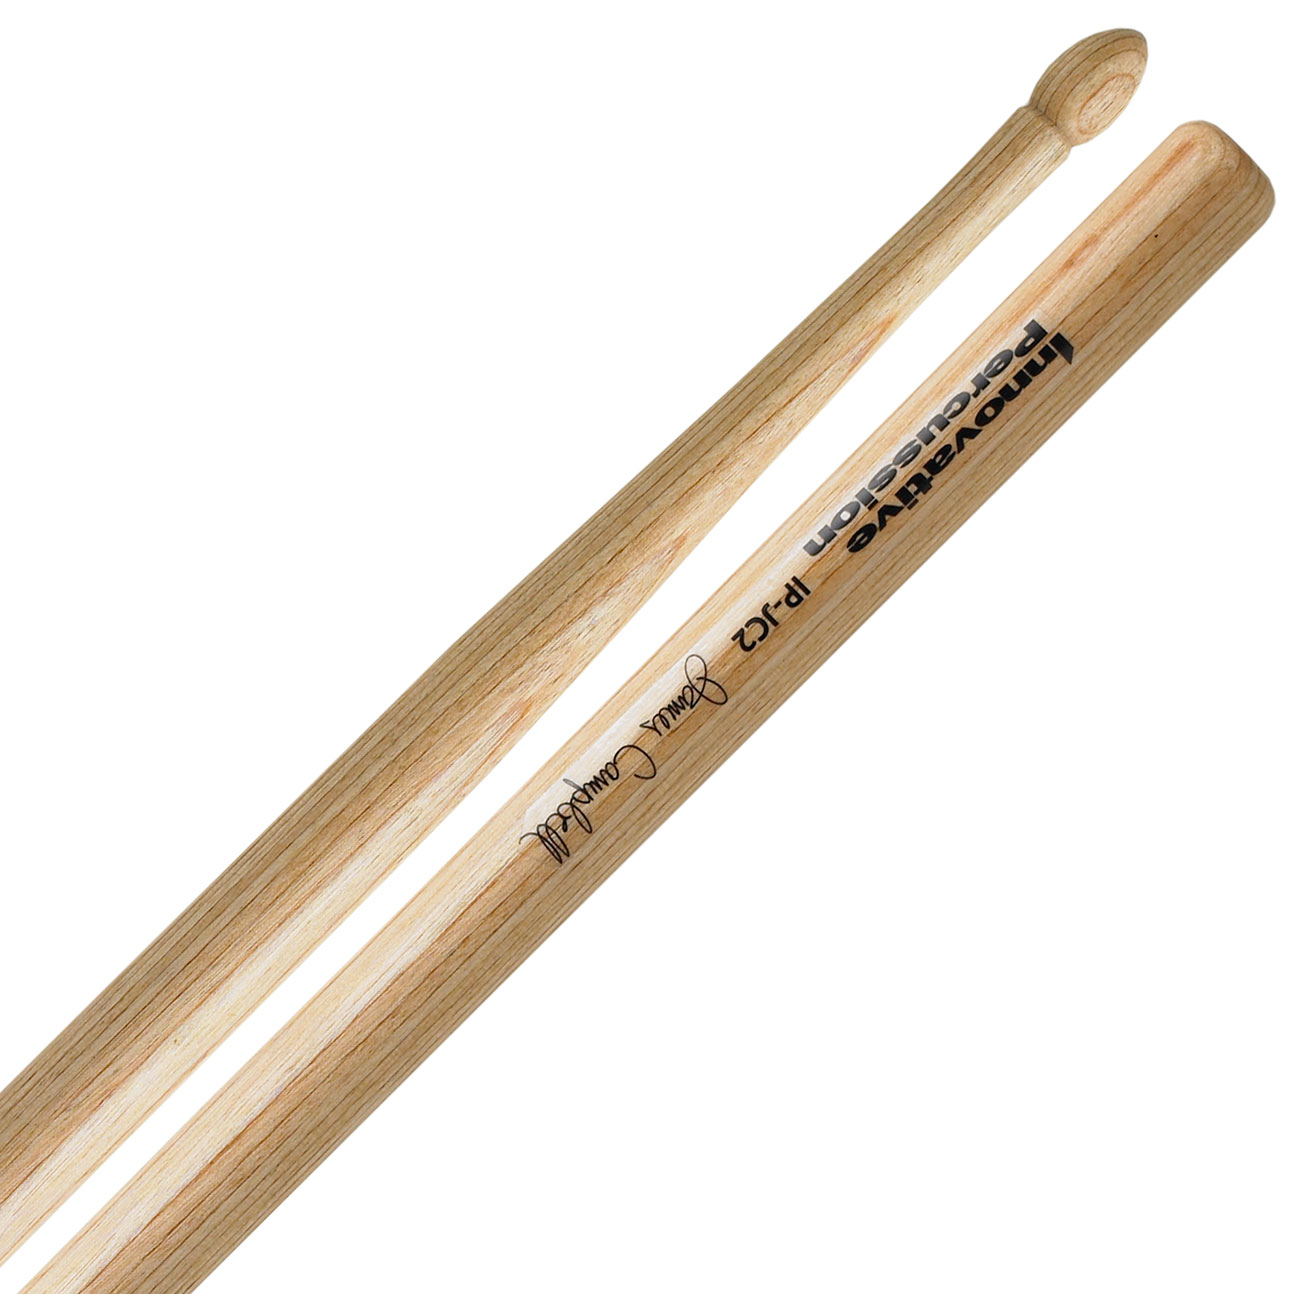 Innovative Percussion James Campbell Laminate Birch Signature Concert Snare Sticks